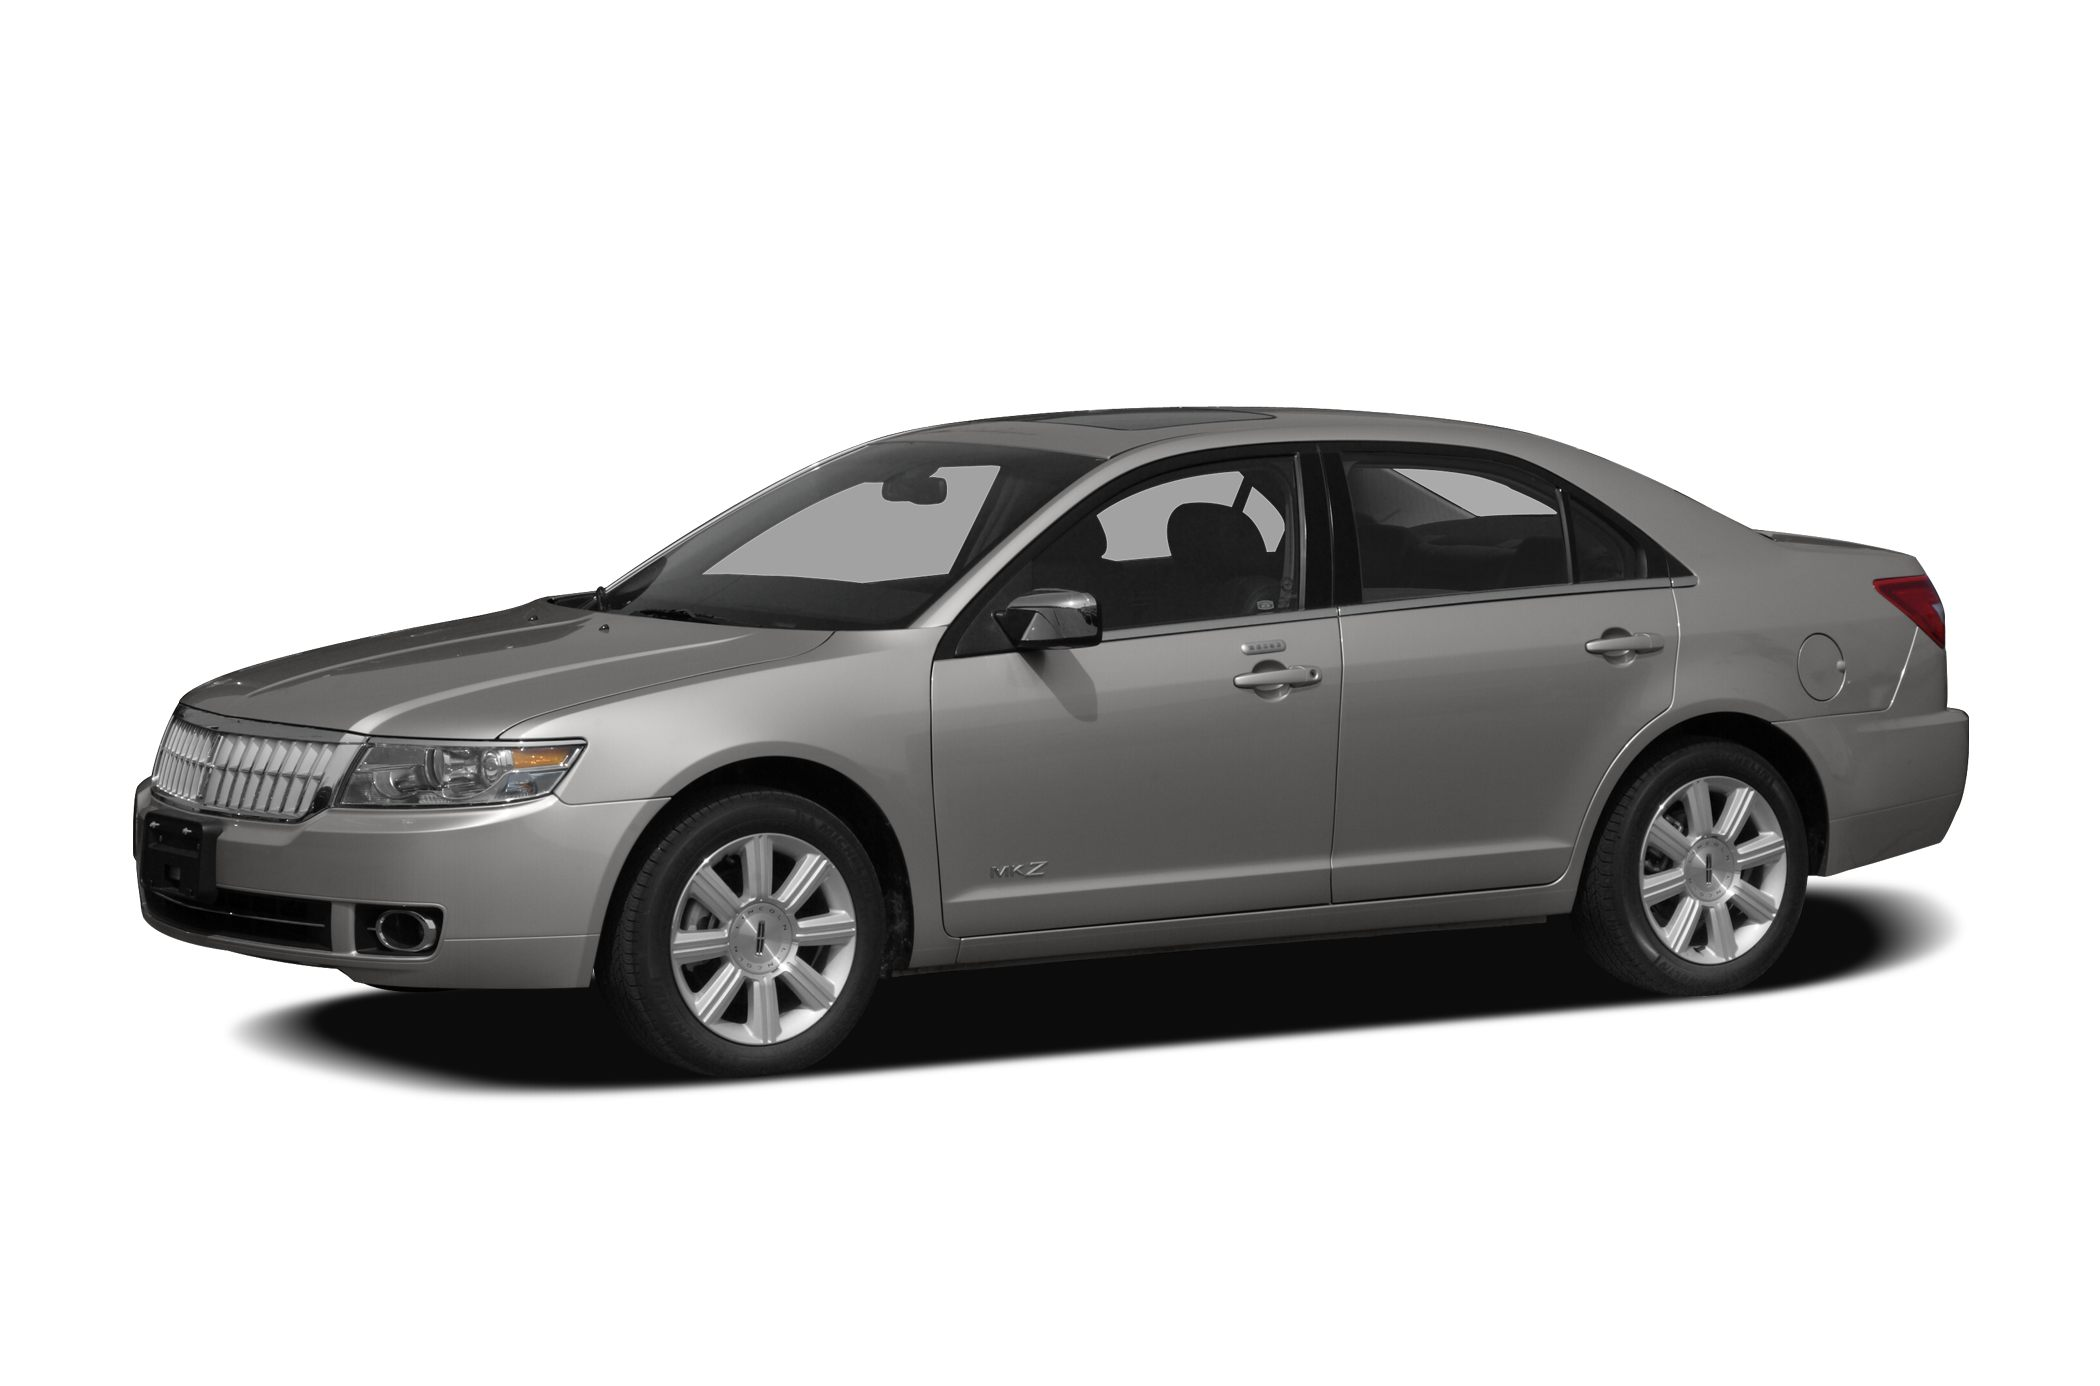 2007 Lincoln Mkz Pricing And Specs